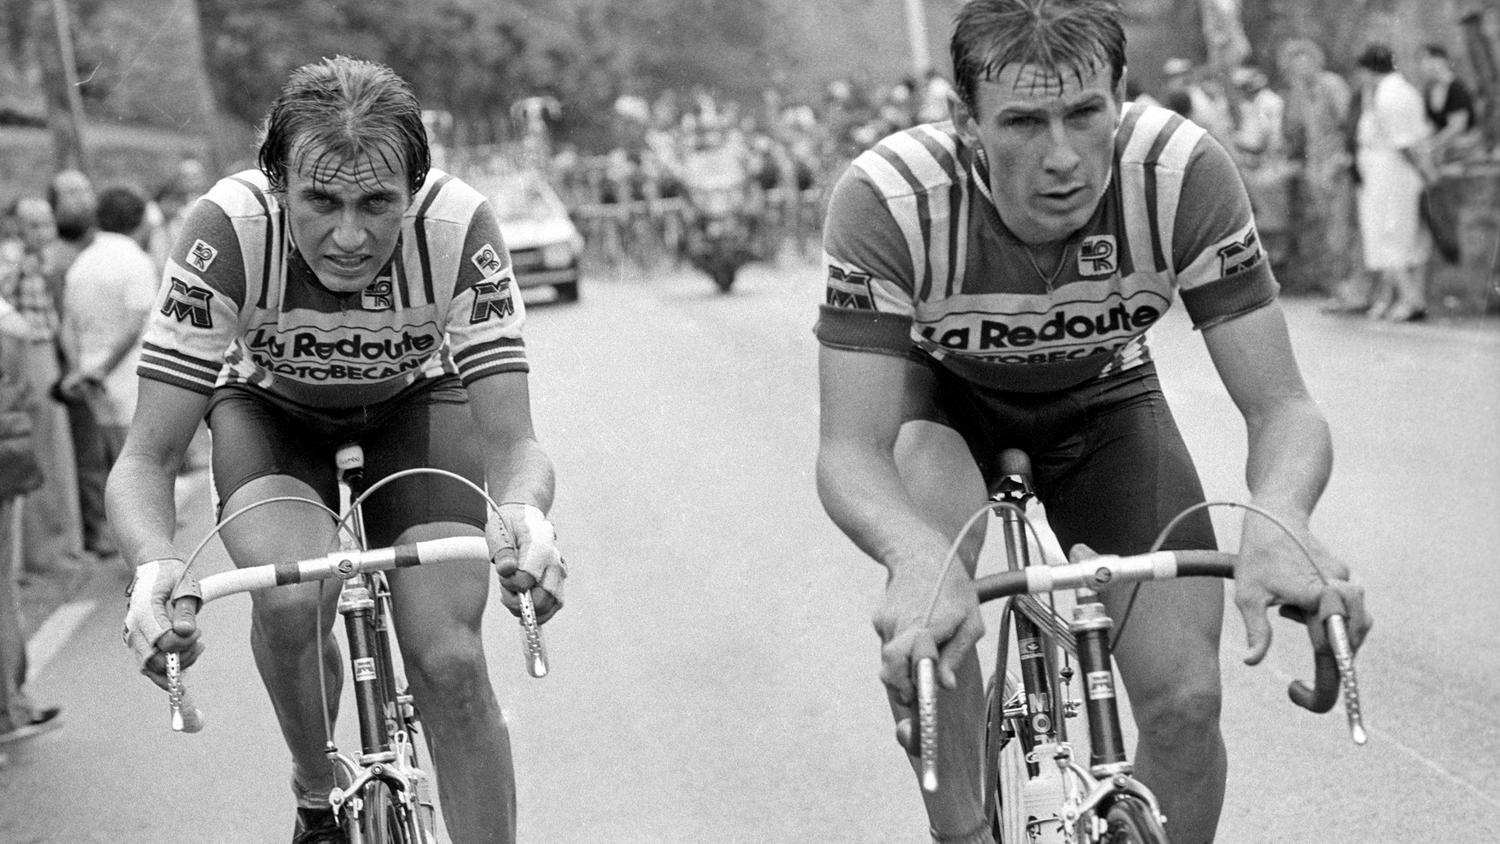 Sorry for the Picture Break Up - A tribute to Paul Sherwen